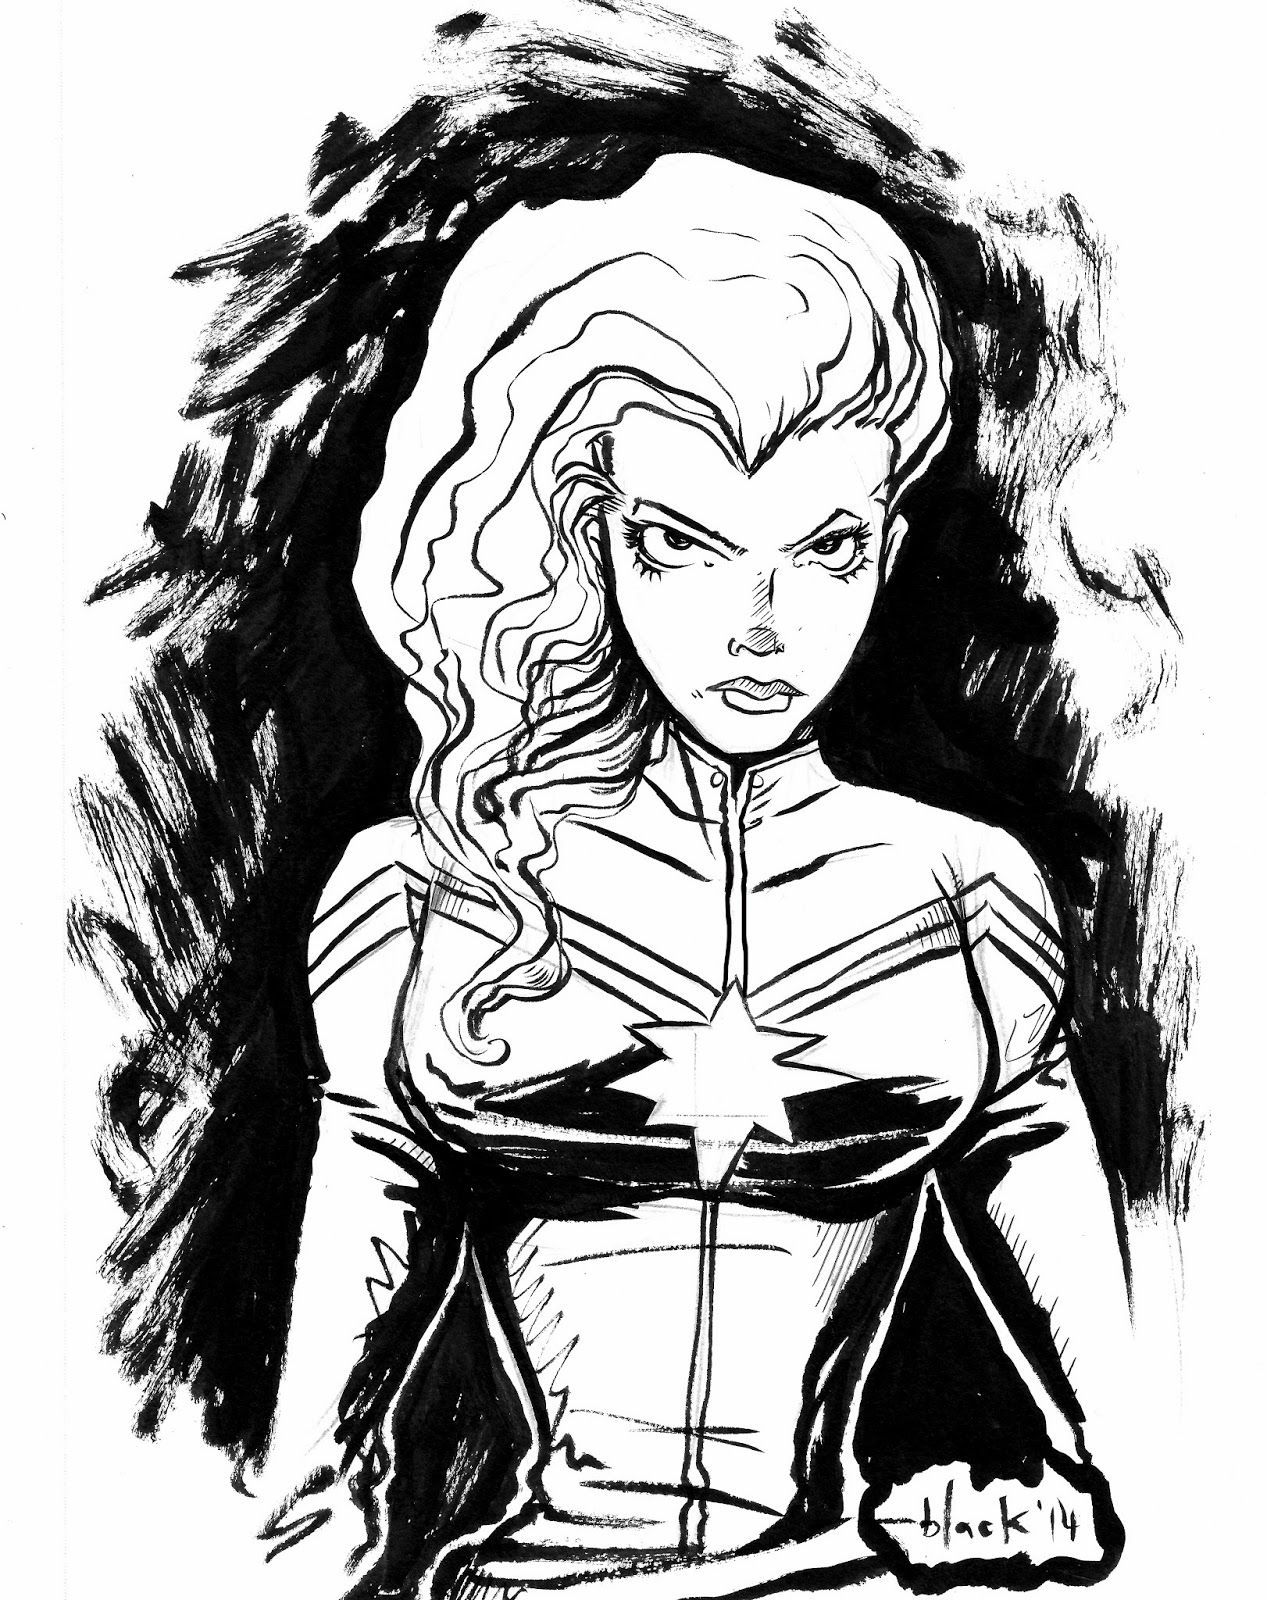 captain marvel coloring pages - Google Search | WEEK 7 | Pinterest